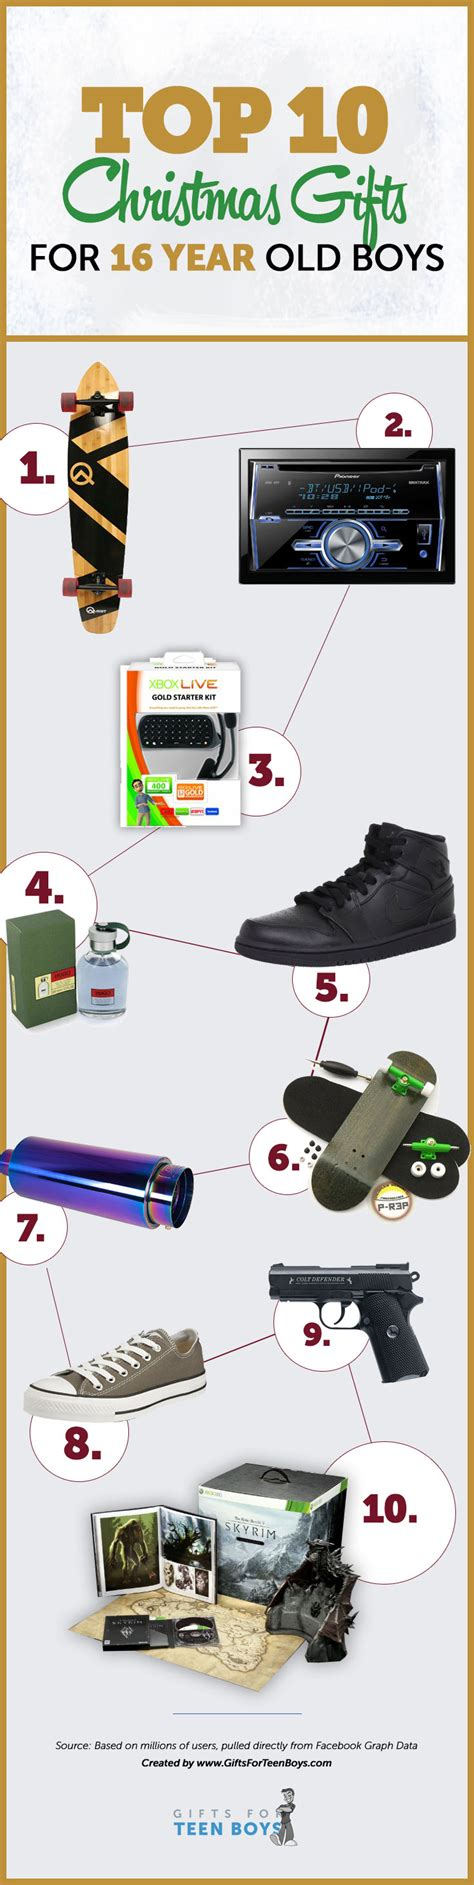 top 10 christmas gifts for teen boys gifts for teen boys